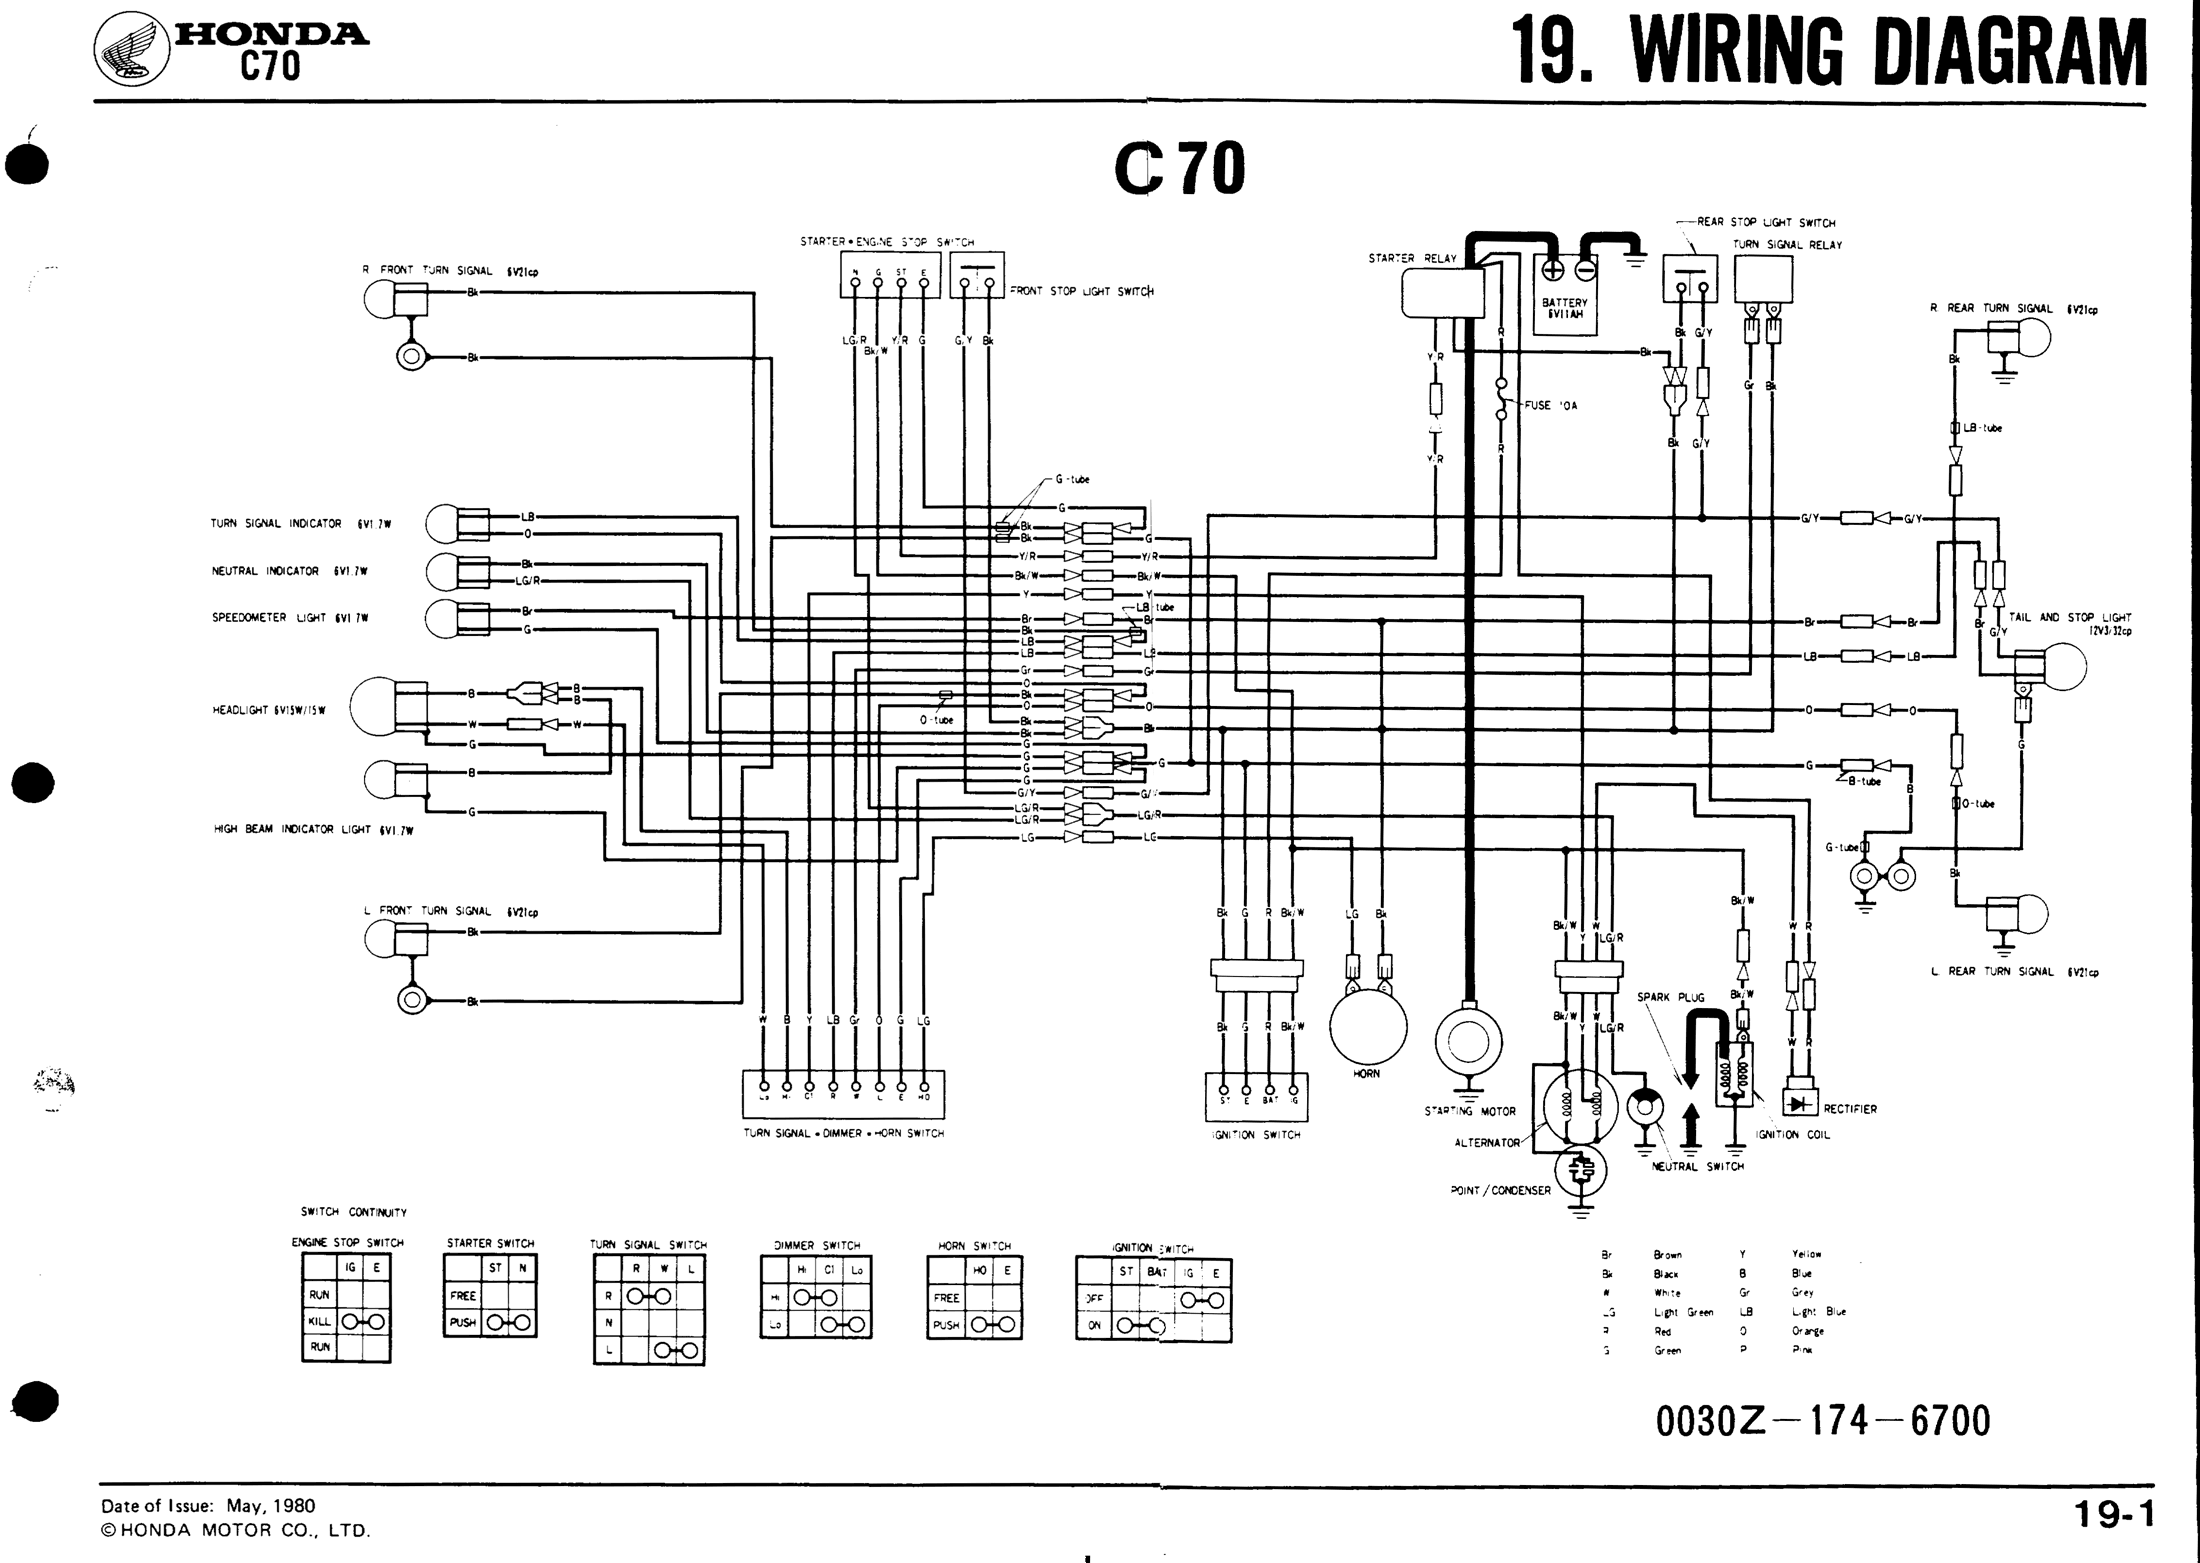 Chevy C70 Wiring Diagram